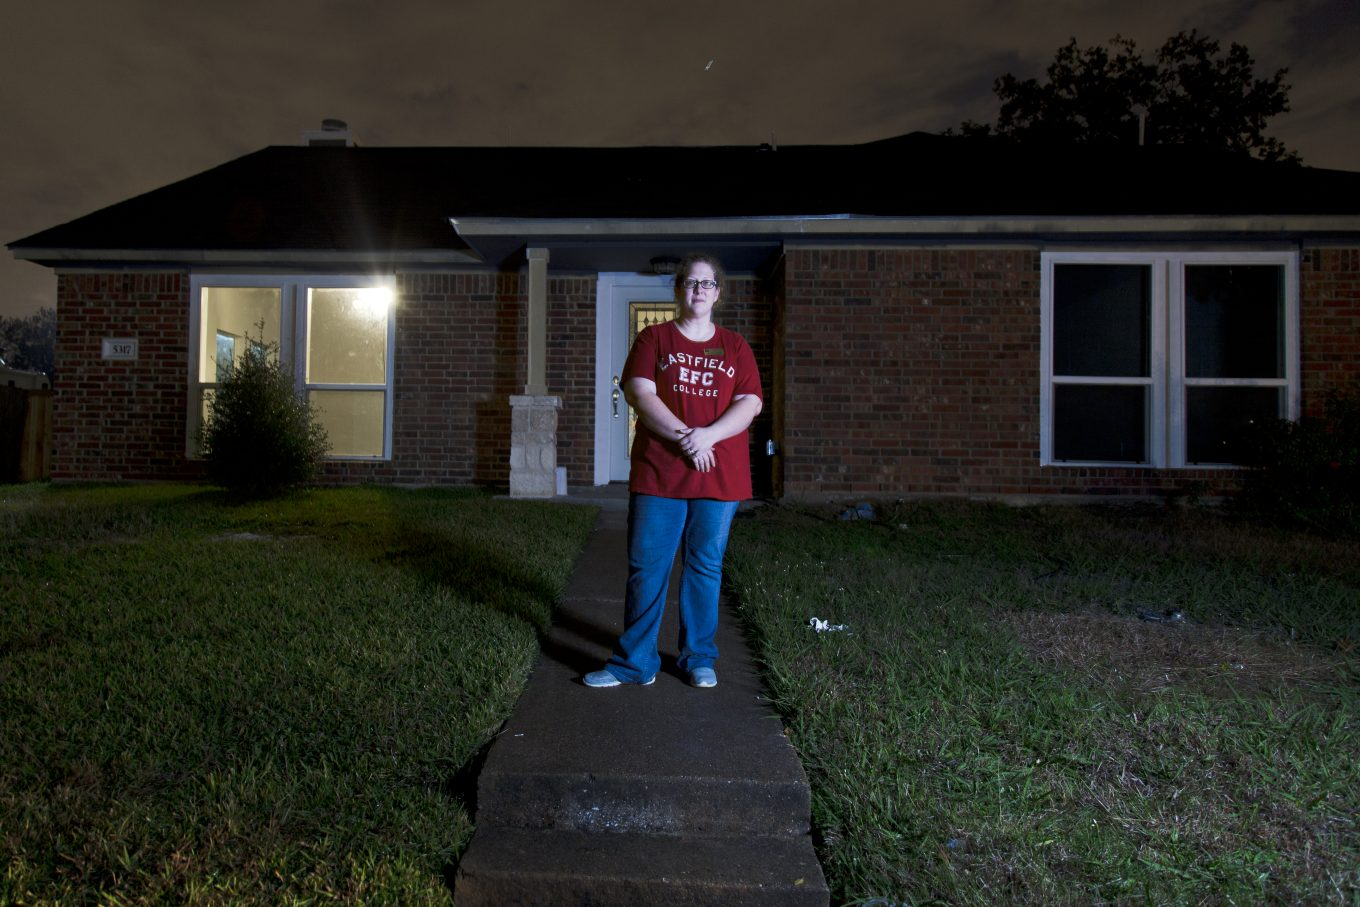 Jessica Cadick lost her rental home in the storms that tore through North Texas last December. Photo/Samantha Guzman